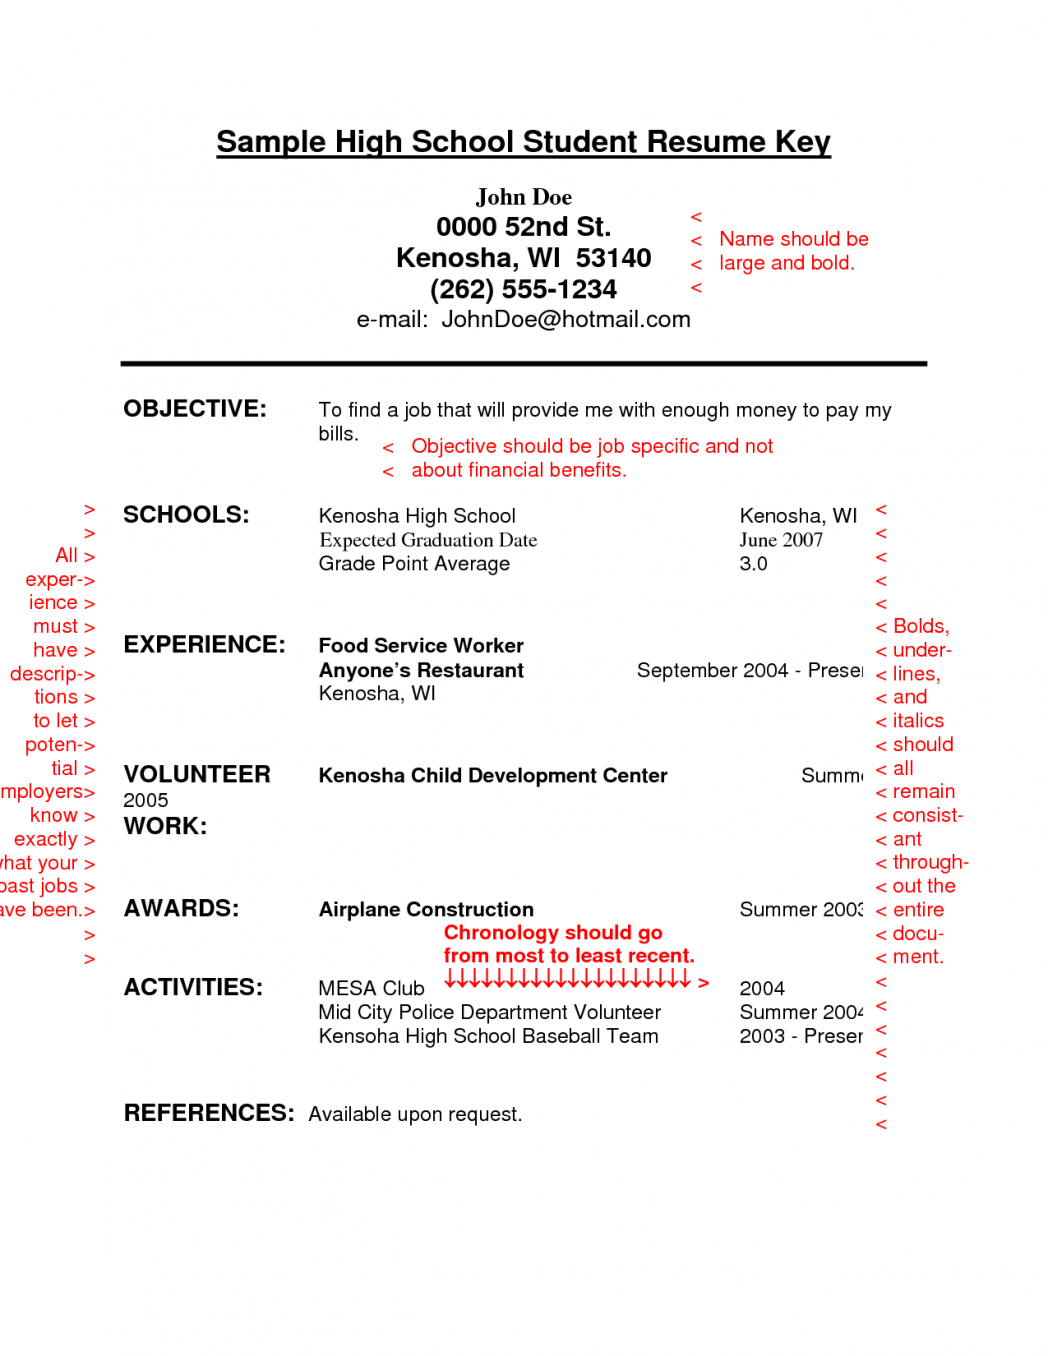 Perfect Job Resume Examples For Highschool Students Essay Demoties Student Samples  High School Oil Broker Cover Letter